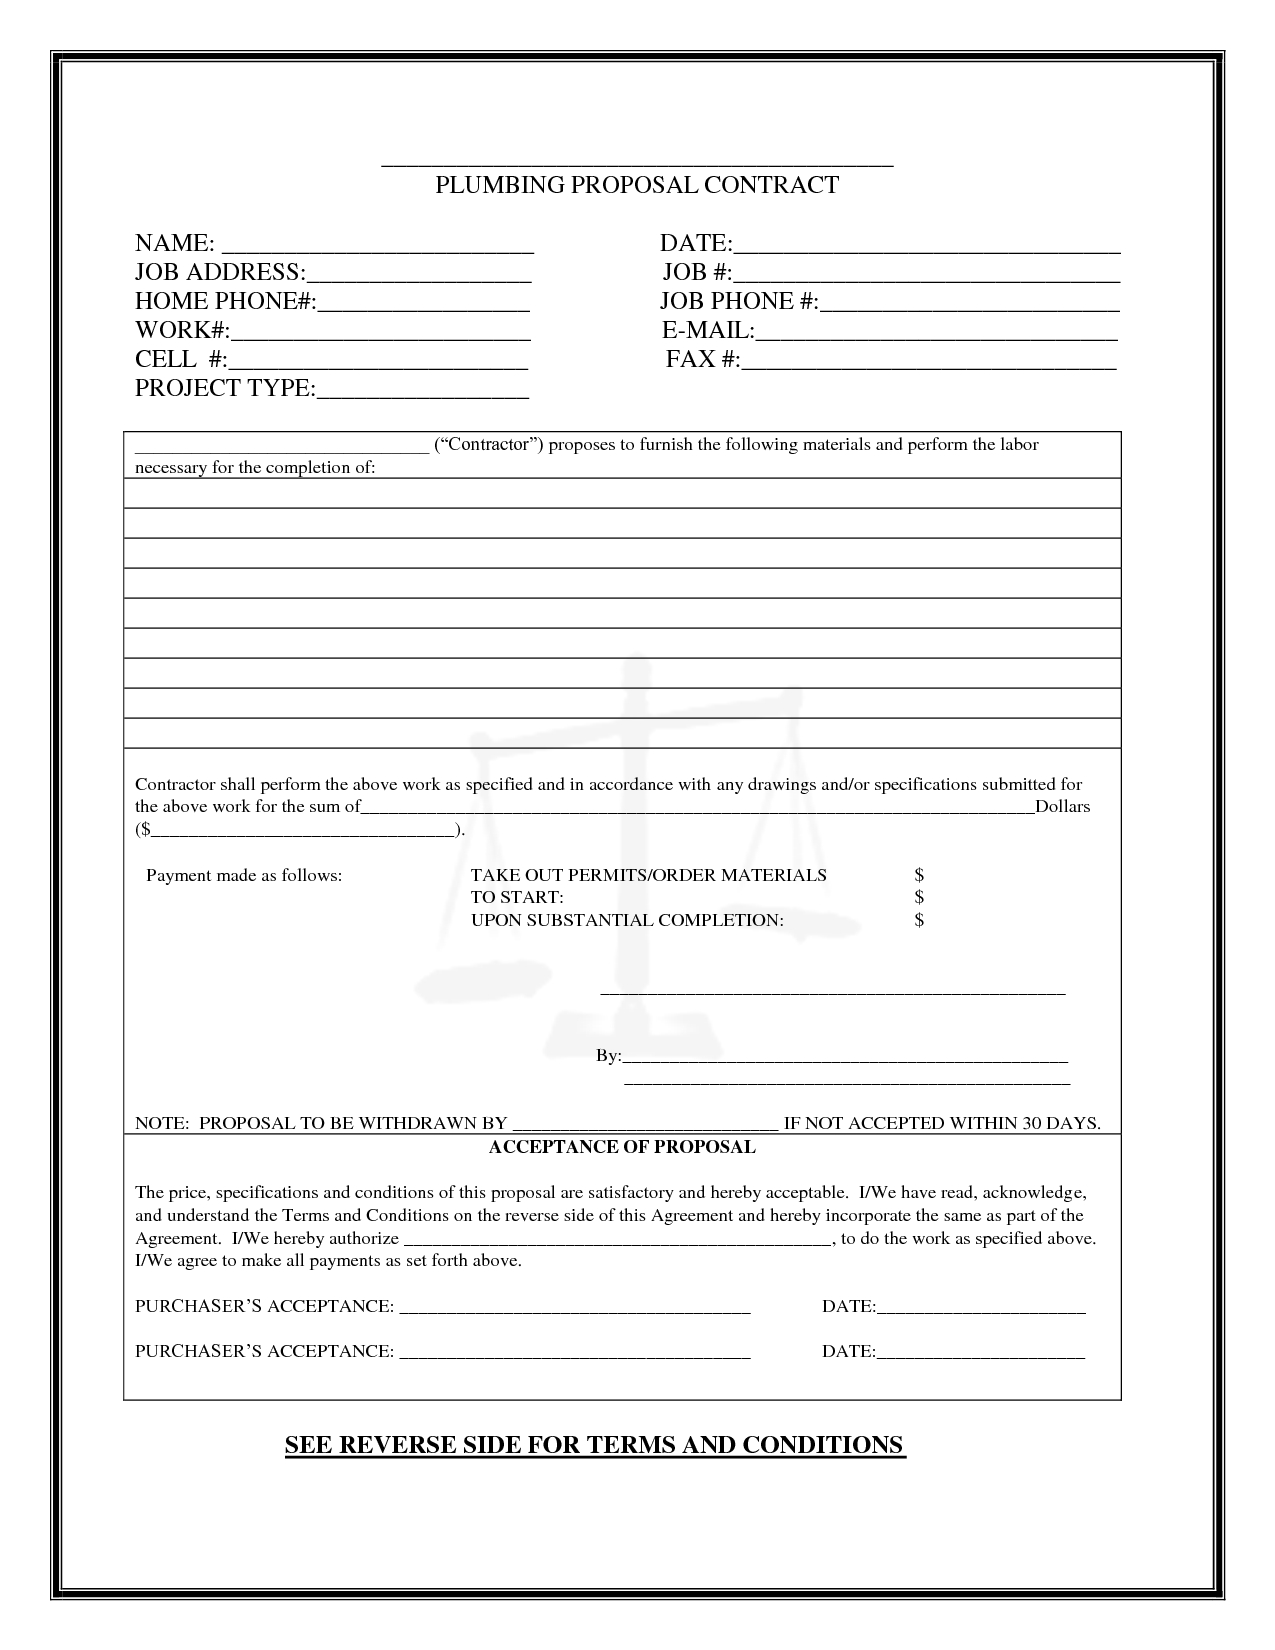 Pinboyvanss On Business | Templates Printable Free, Proposal - Free Printable Proposal Forms